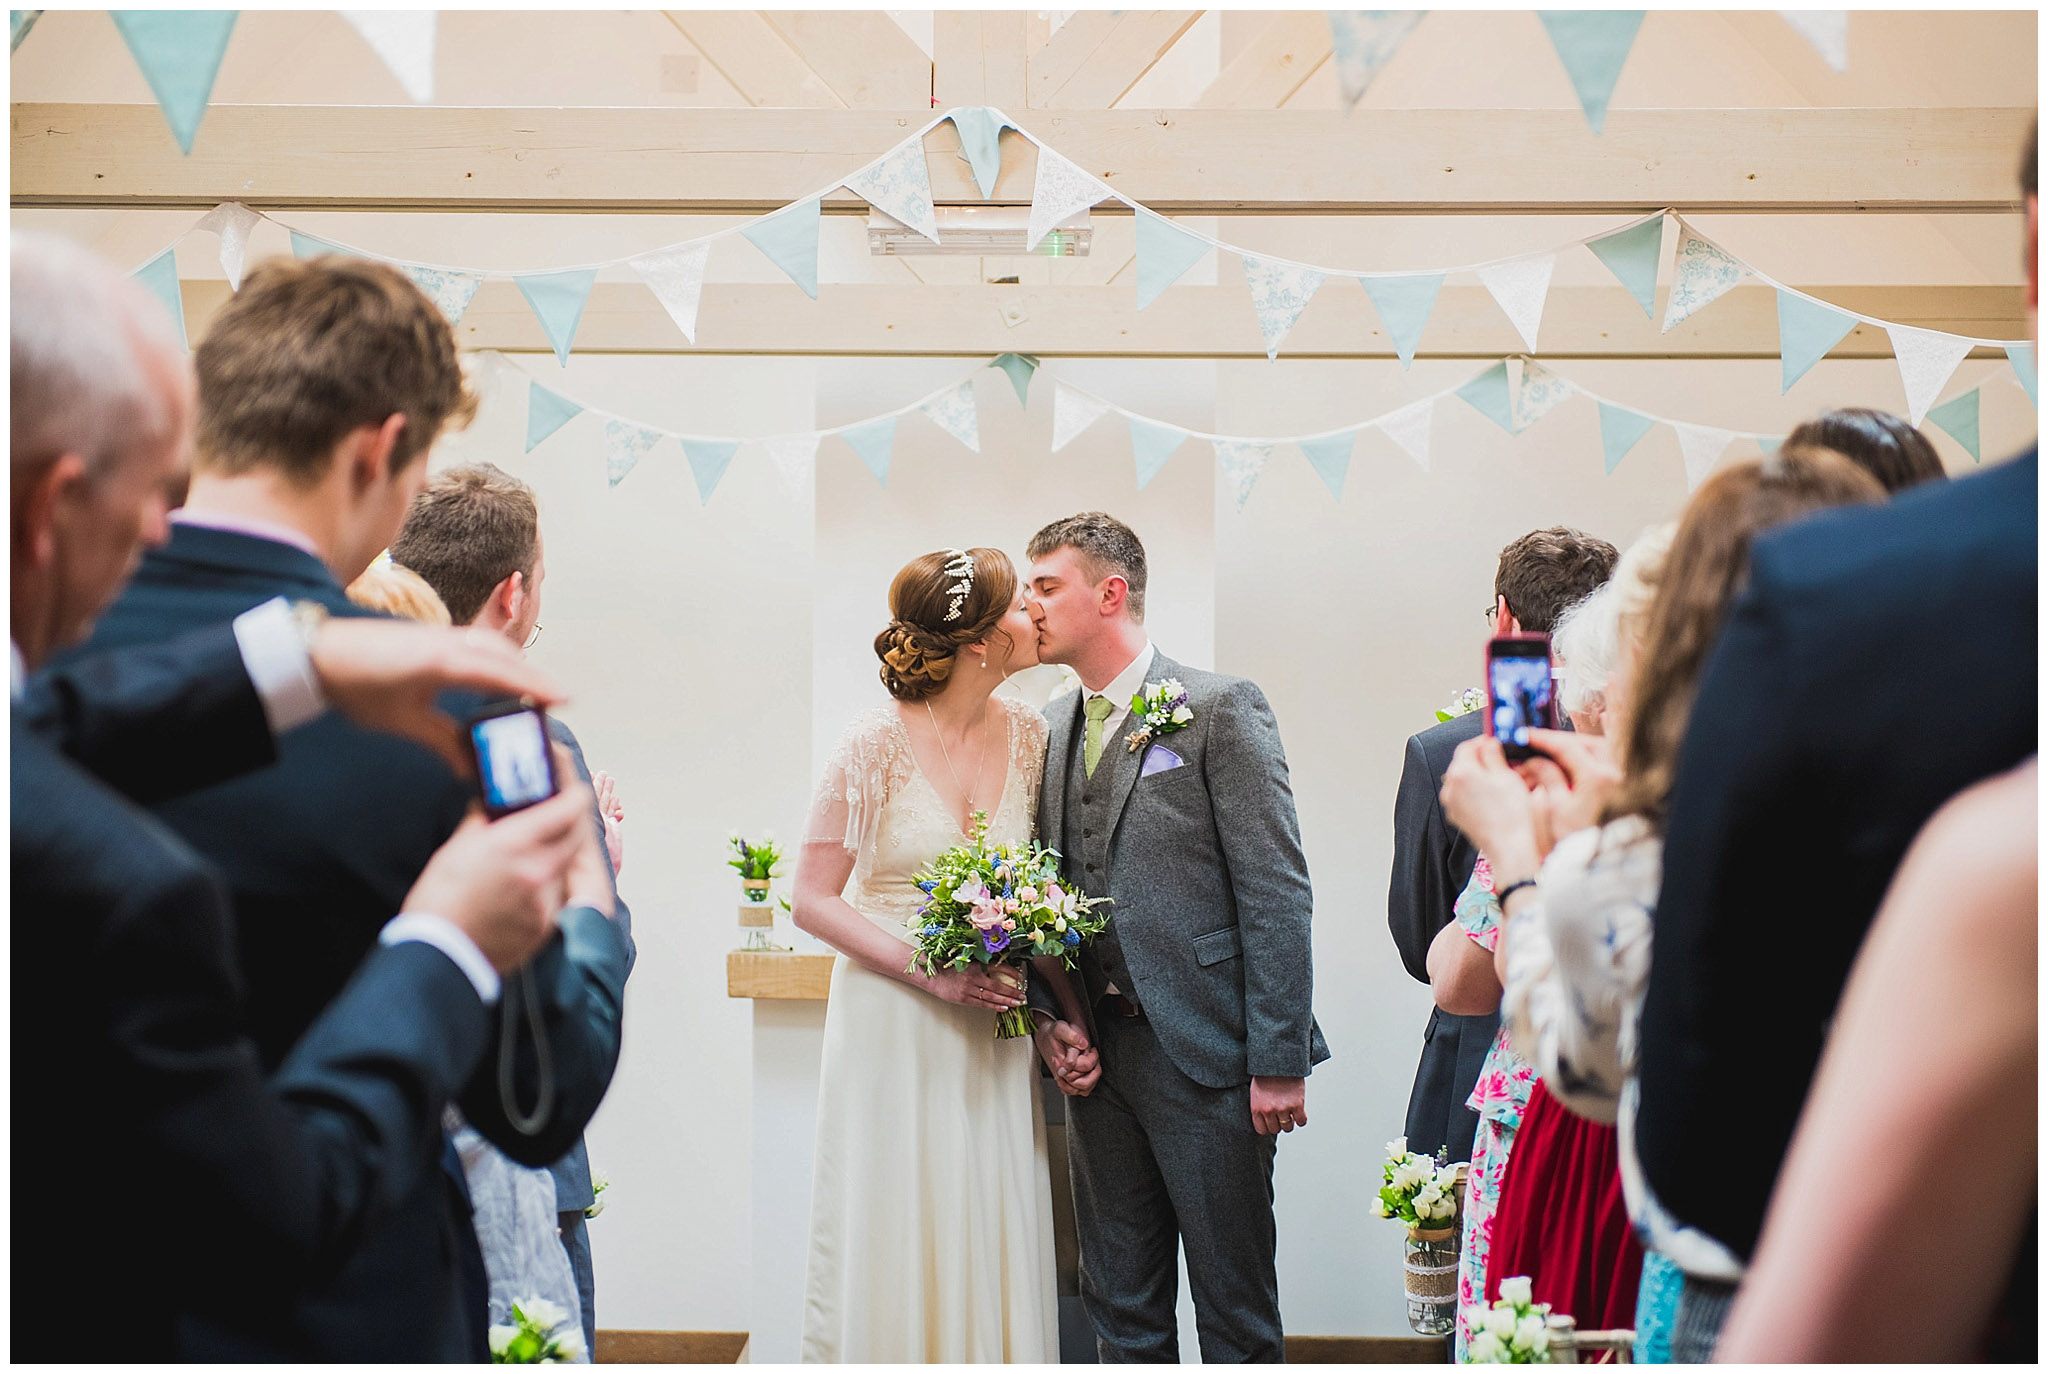 Sarah-&-Dan-The-Old-Vicarage-Wedding-Venue-Dorset-Photographer-22